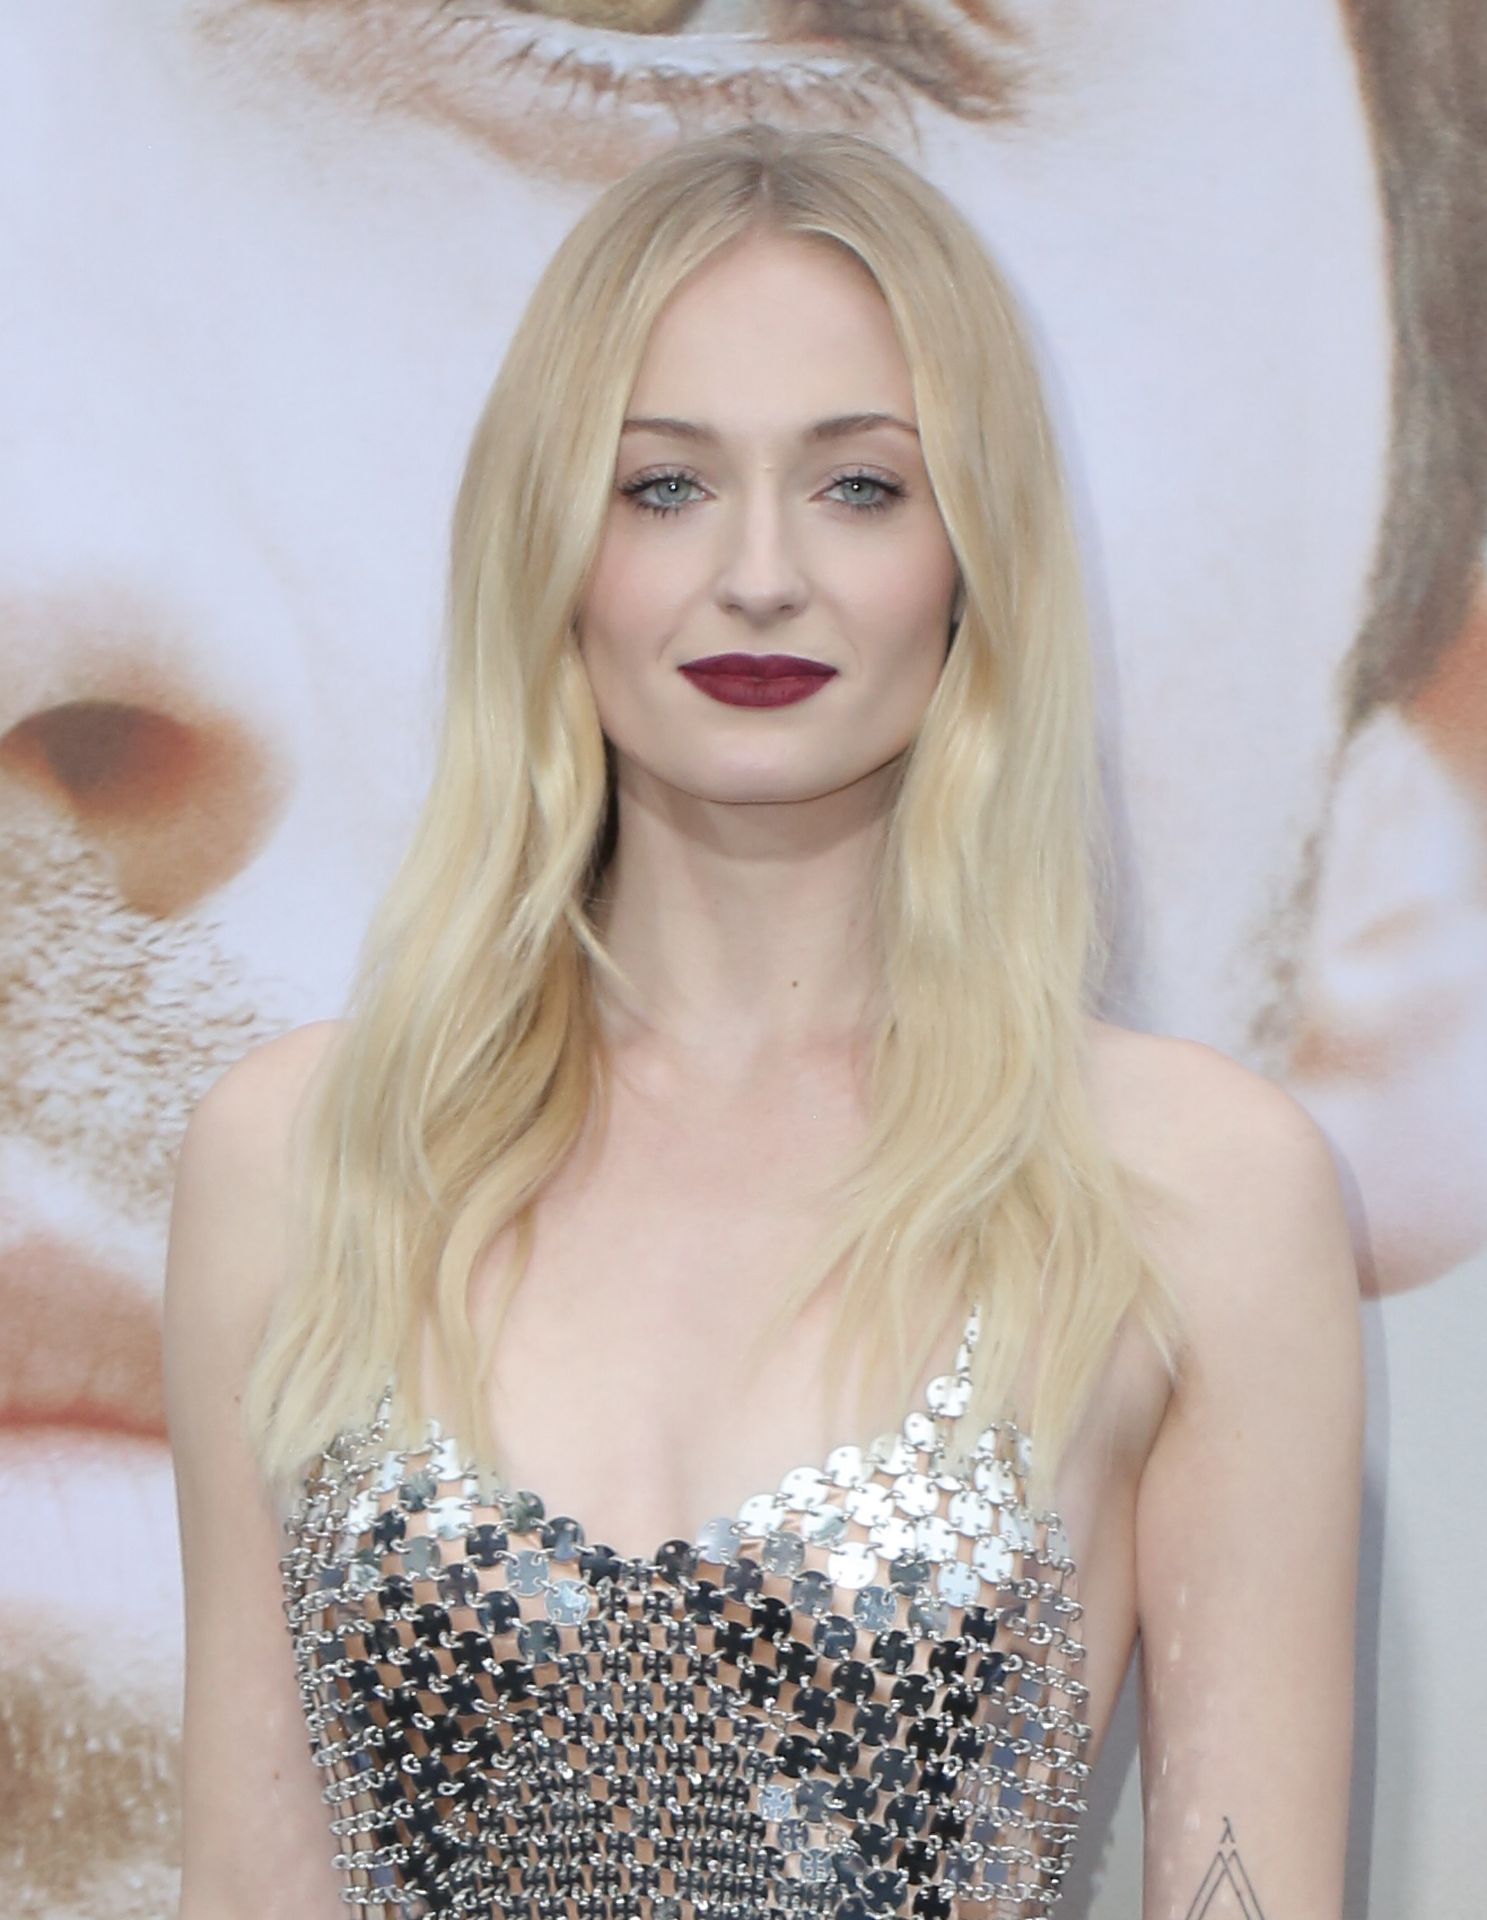 Sexy Sophie Turner Picture Gallery (35 High-Resolution Photos) - The Fappening!